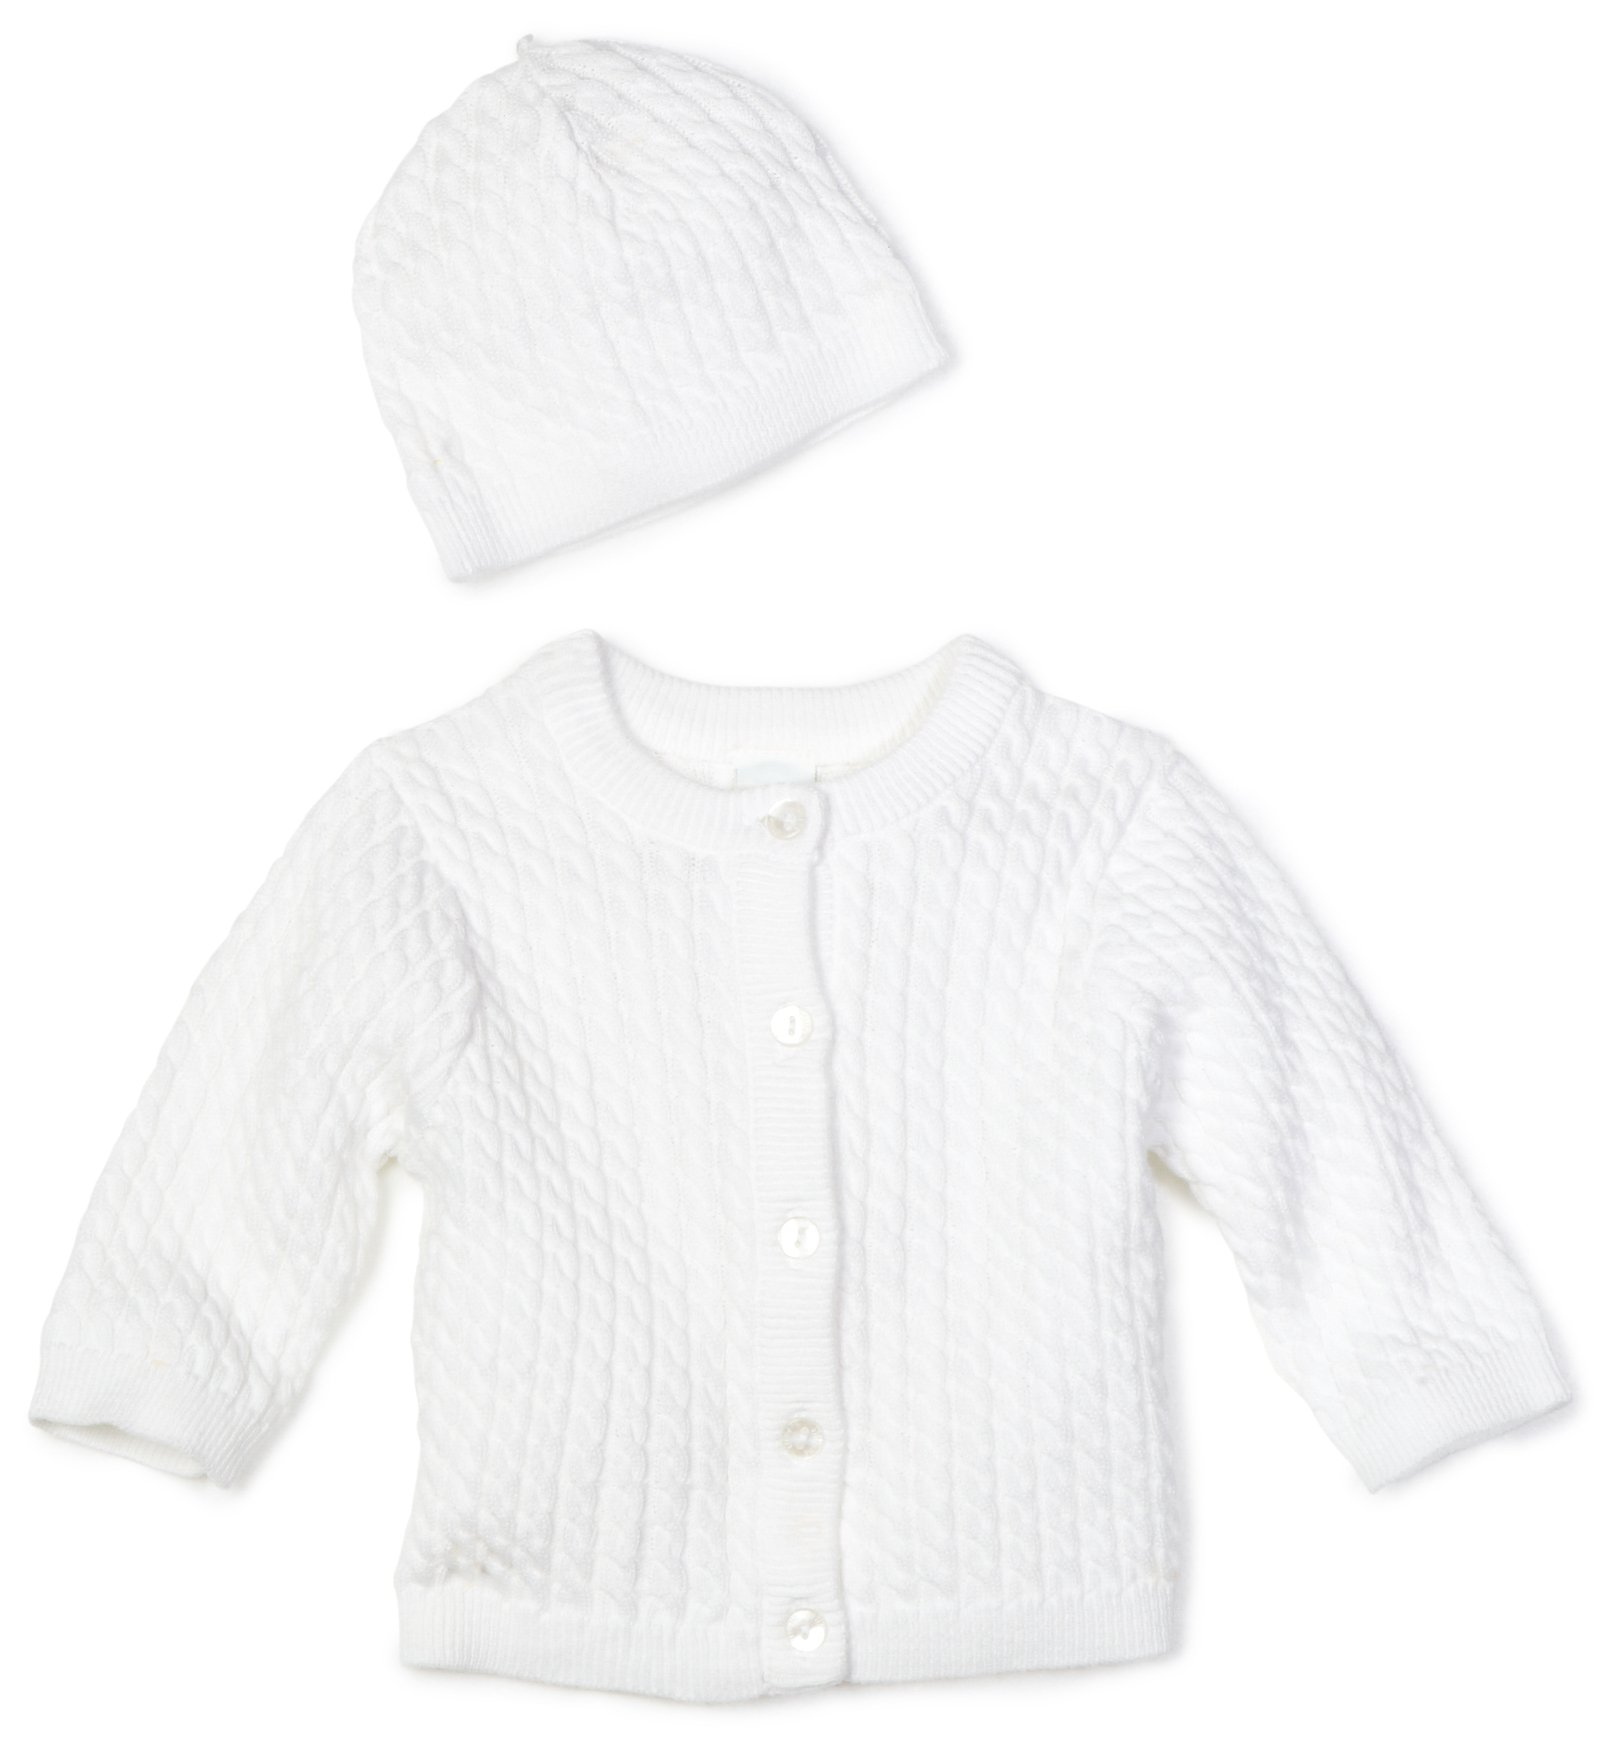 Little Me Unisex-baby Newborn Lovable Cable Sweater, White, 3 Months by Little Me